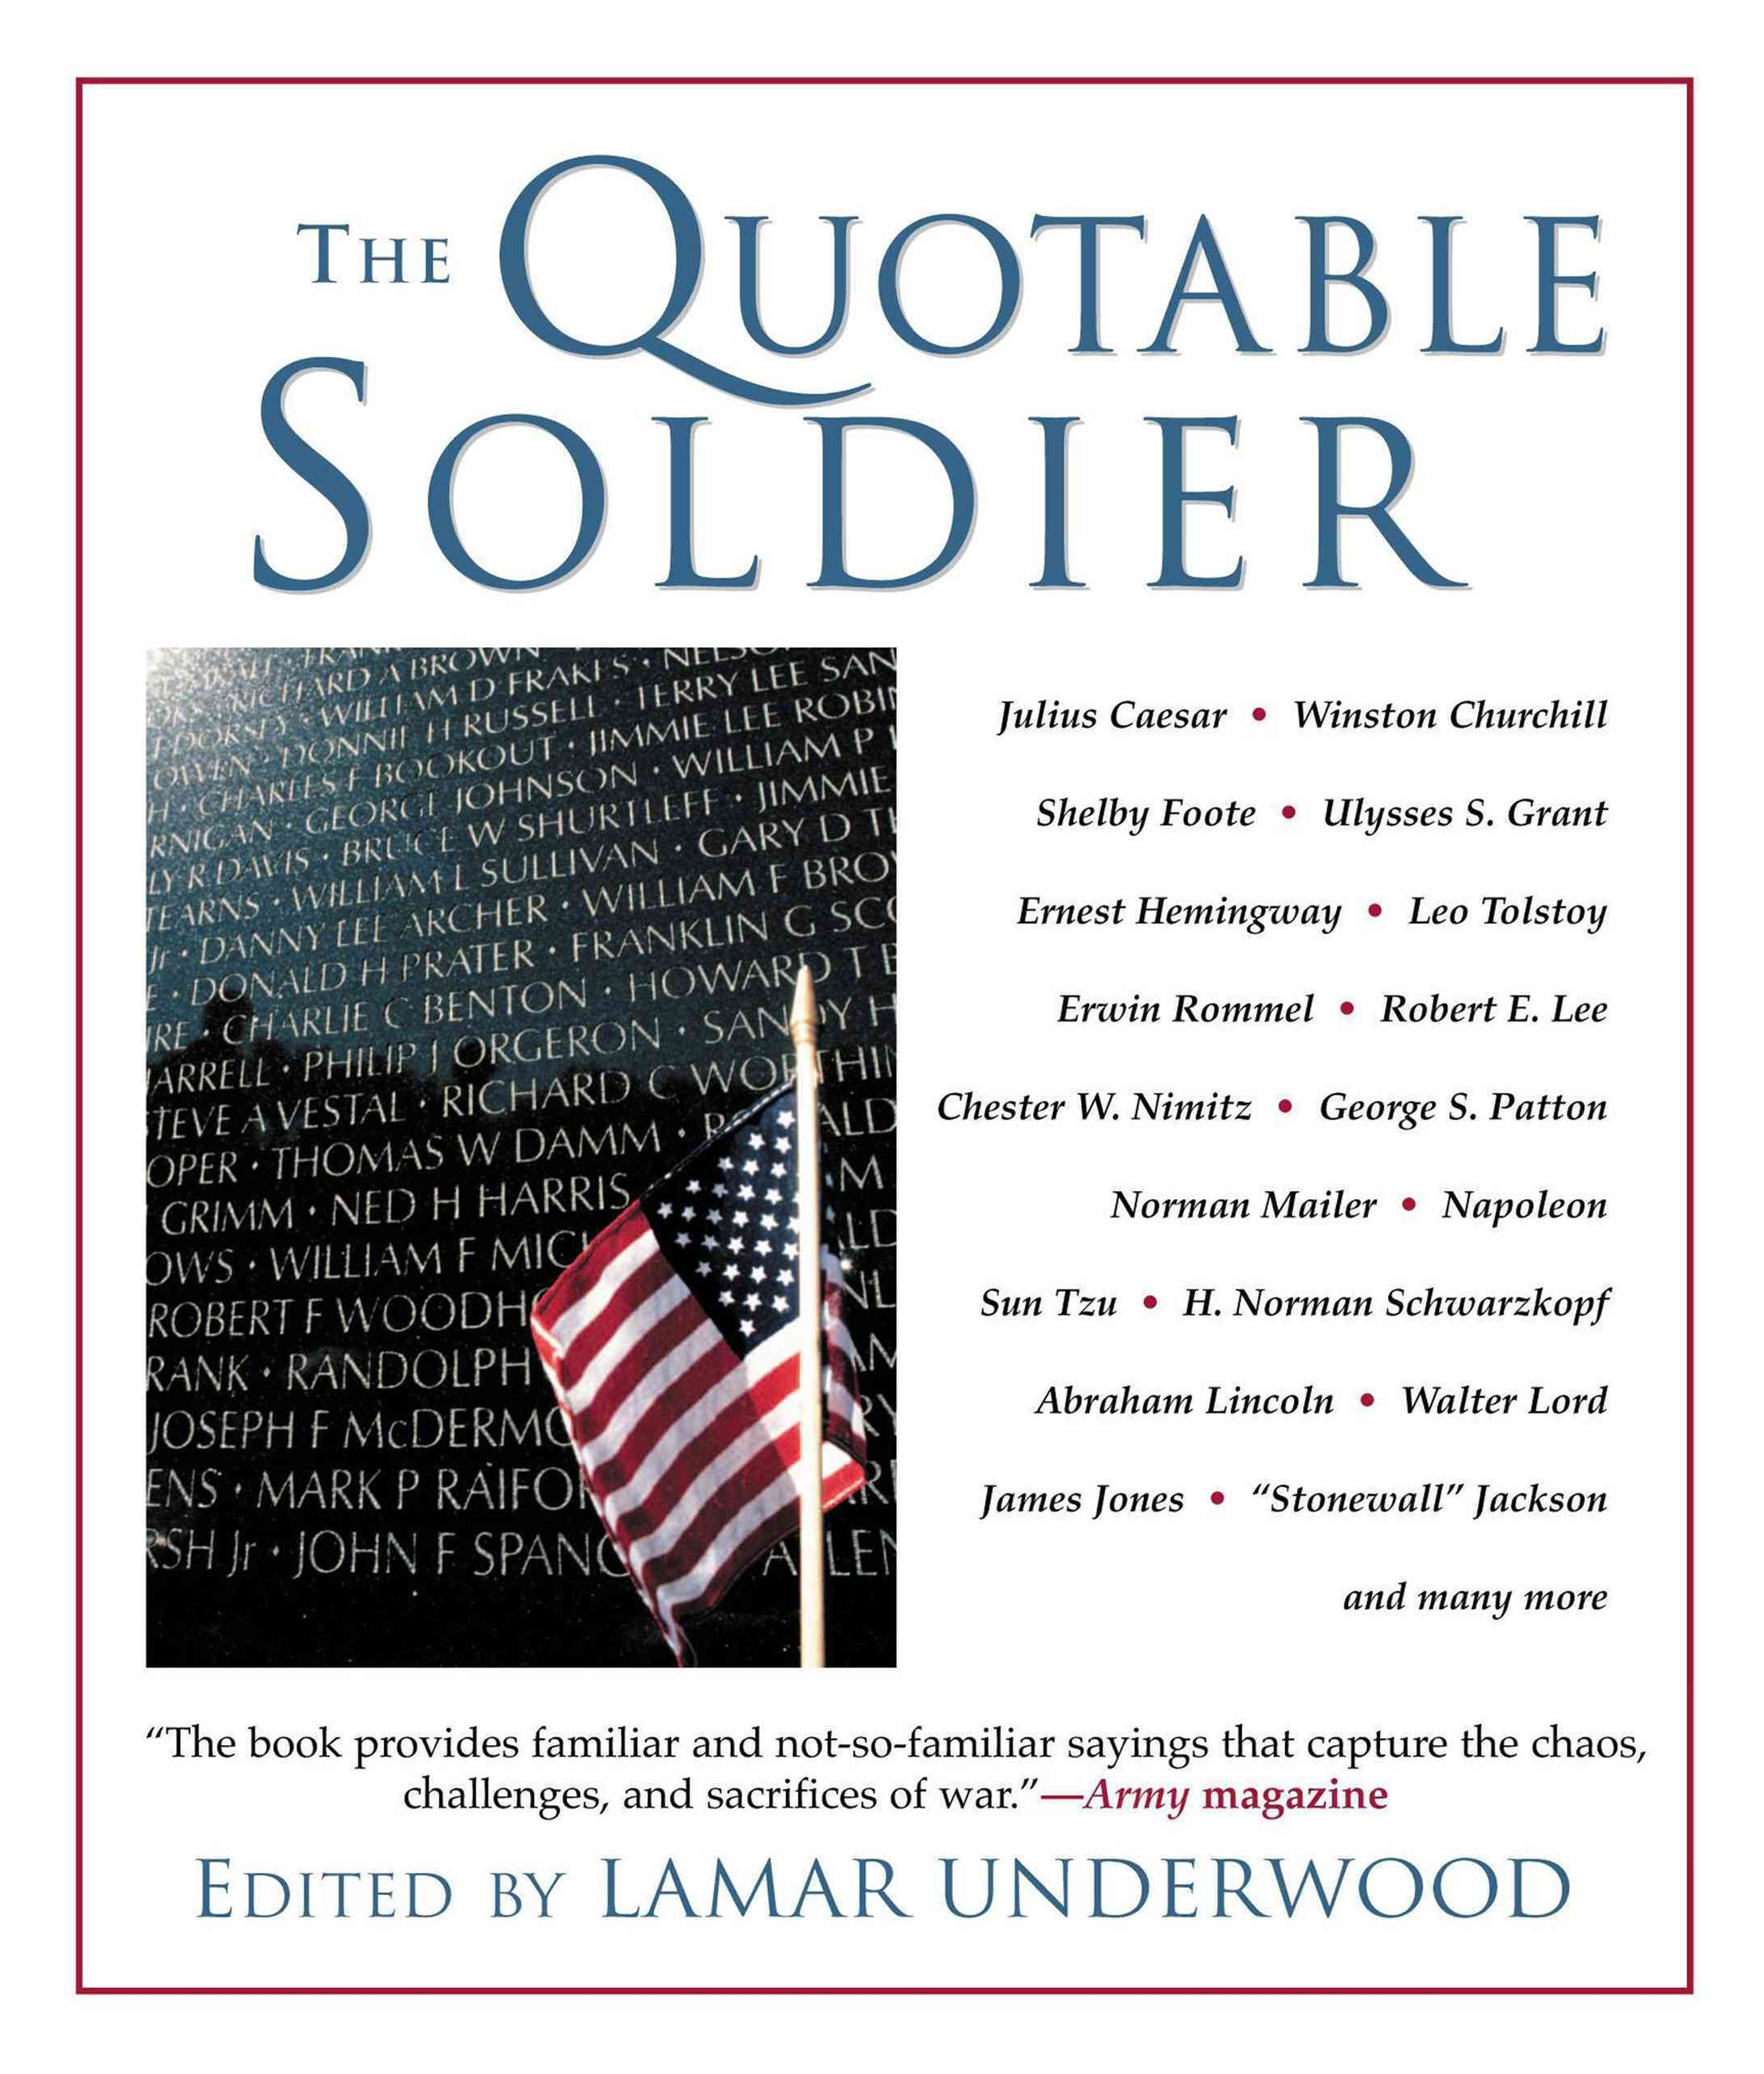 The Quotable Soldier